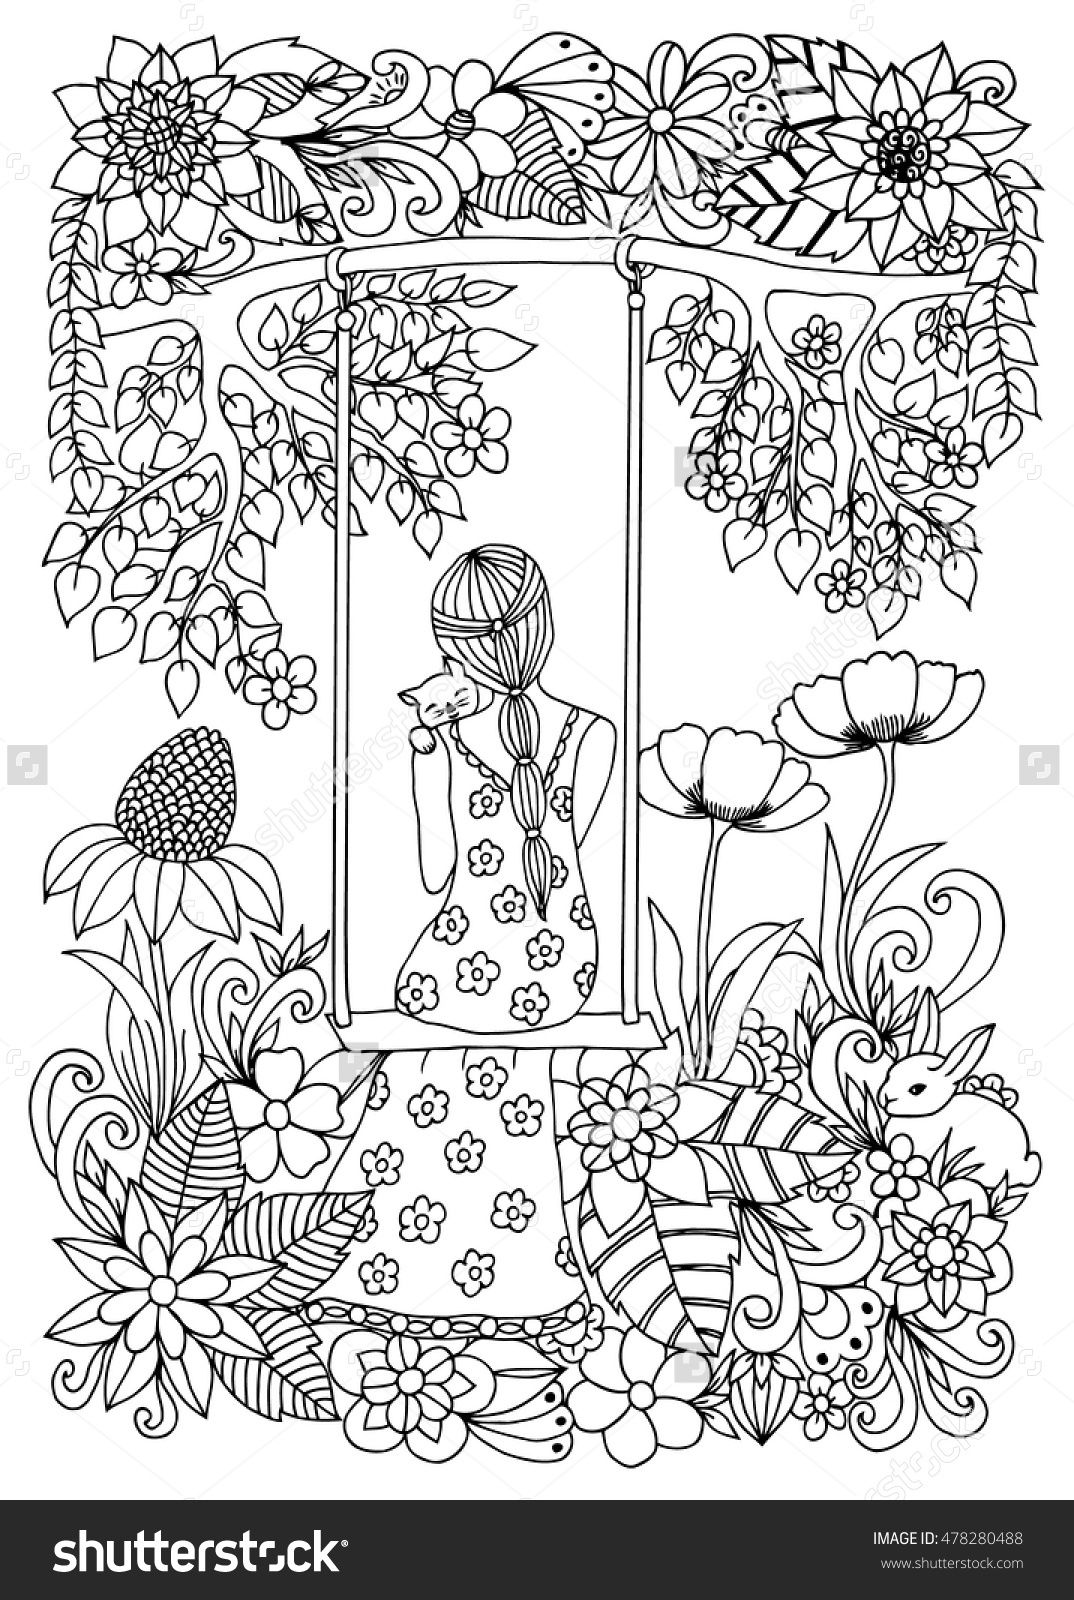 zentangle girl with kitten on swing coloring page | Coloring ...